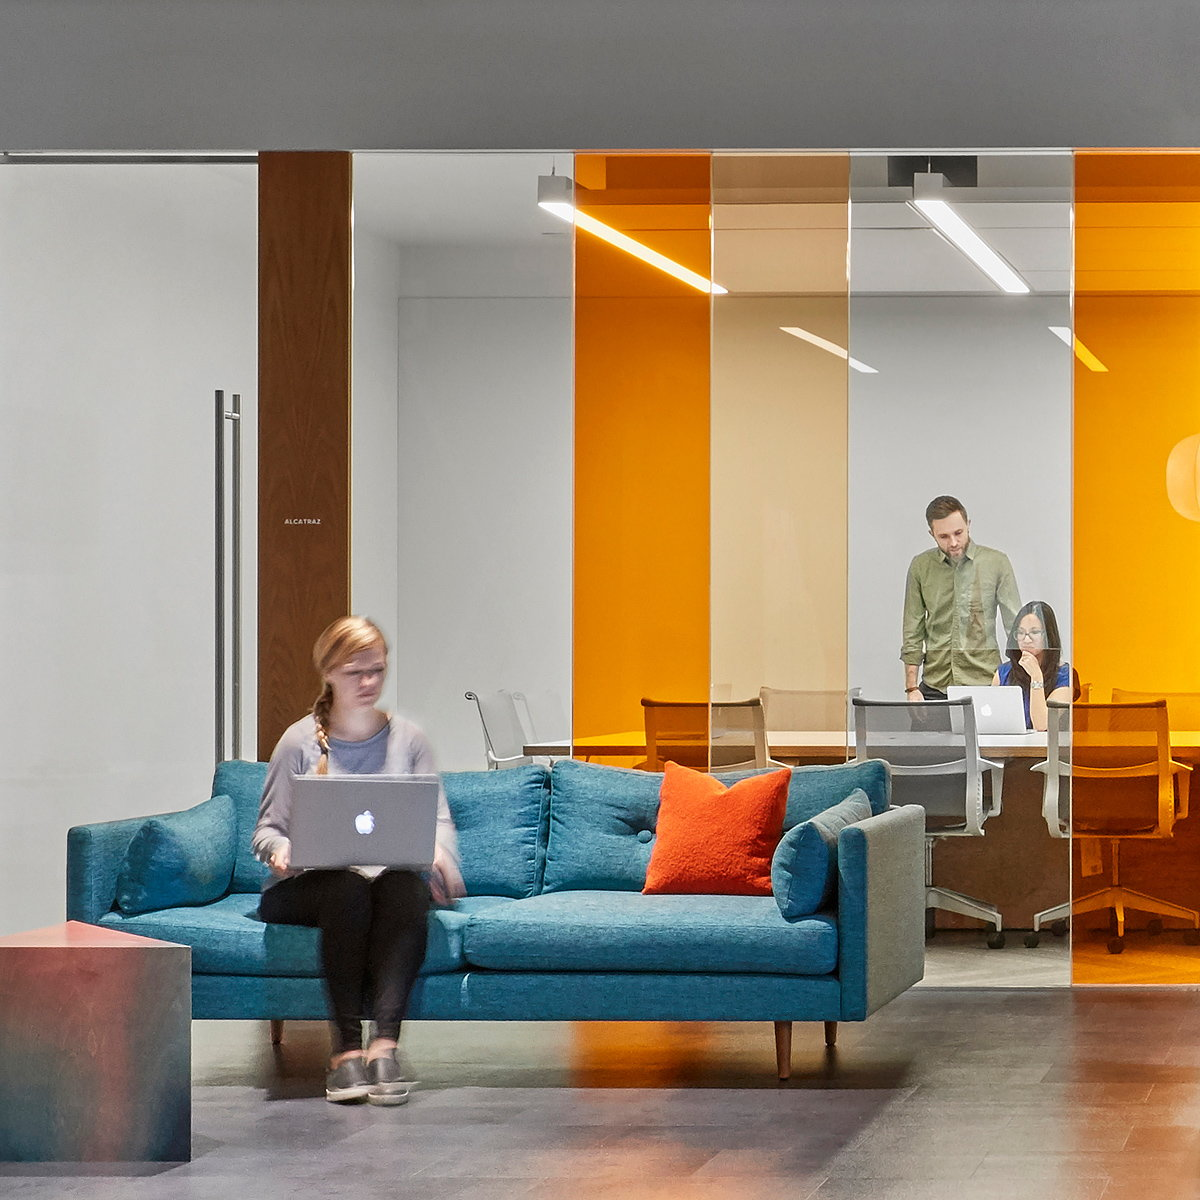 Studio O+A Designs Cisco Meraki's Second Floor Expansion